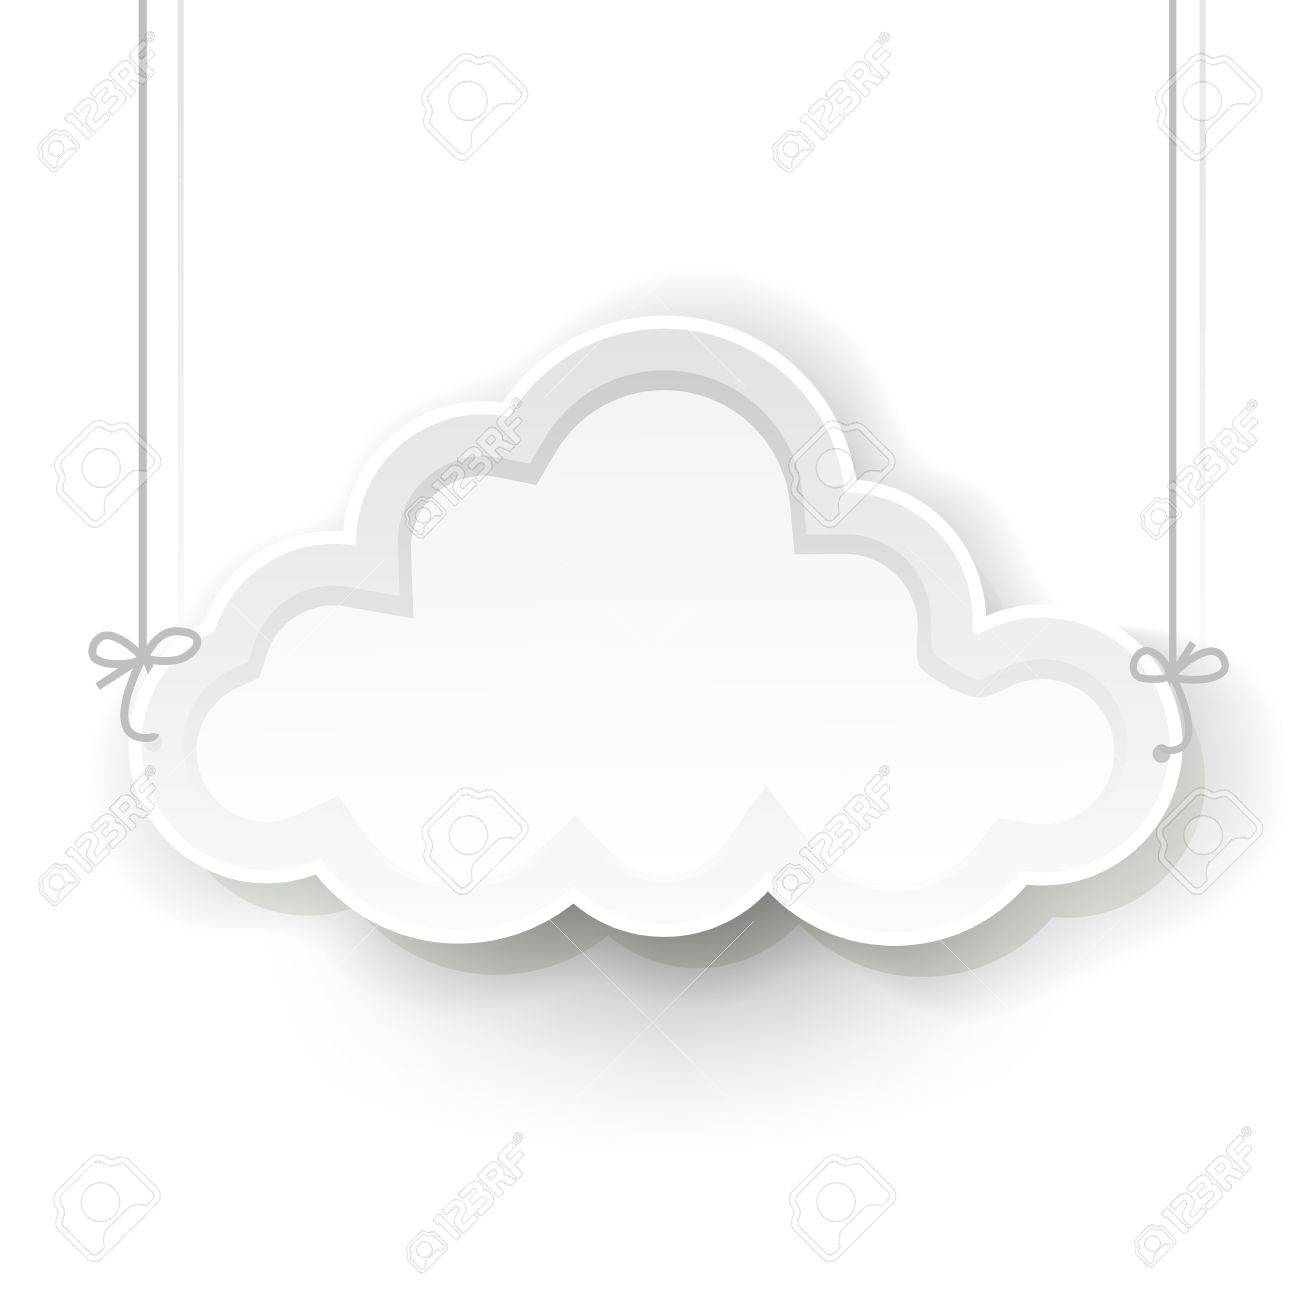 White cloud symbol hanging on white background royalty free white cloud symbol hanging on white background stock vector 19017704 biocorpaavc Gallery